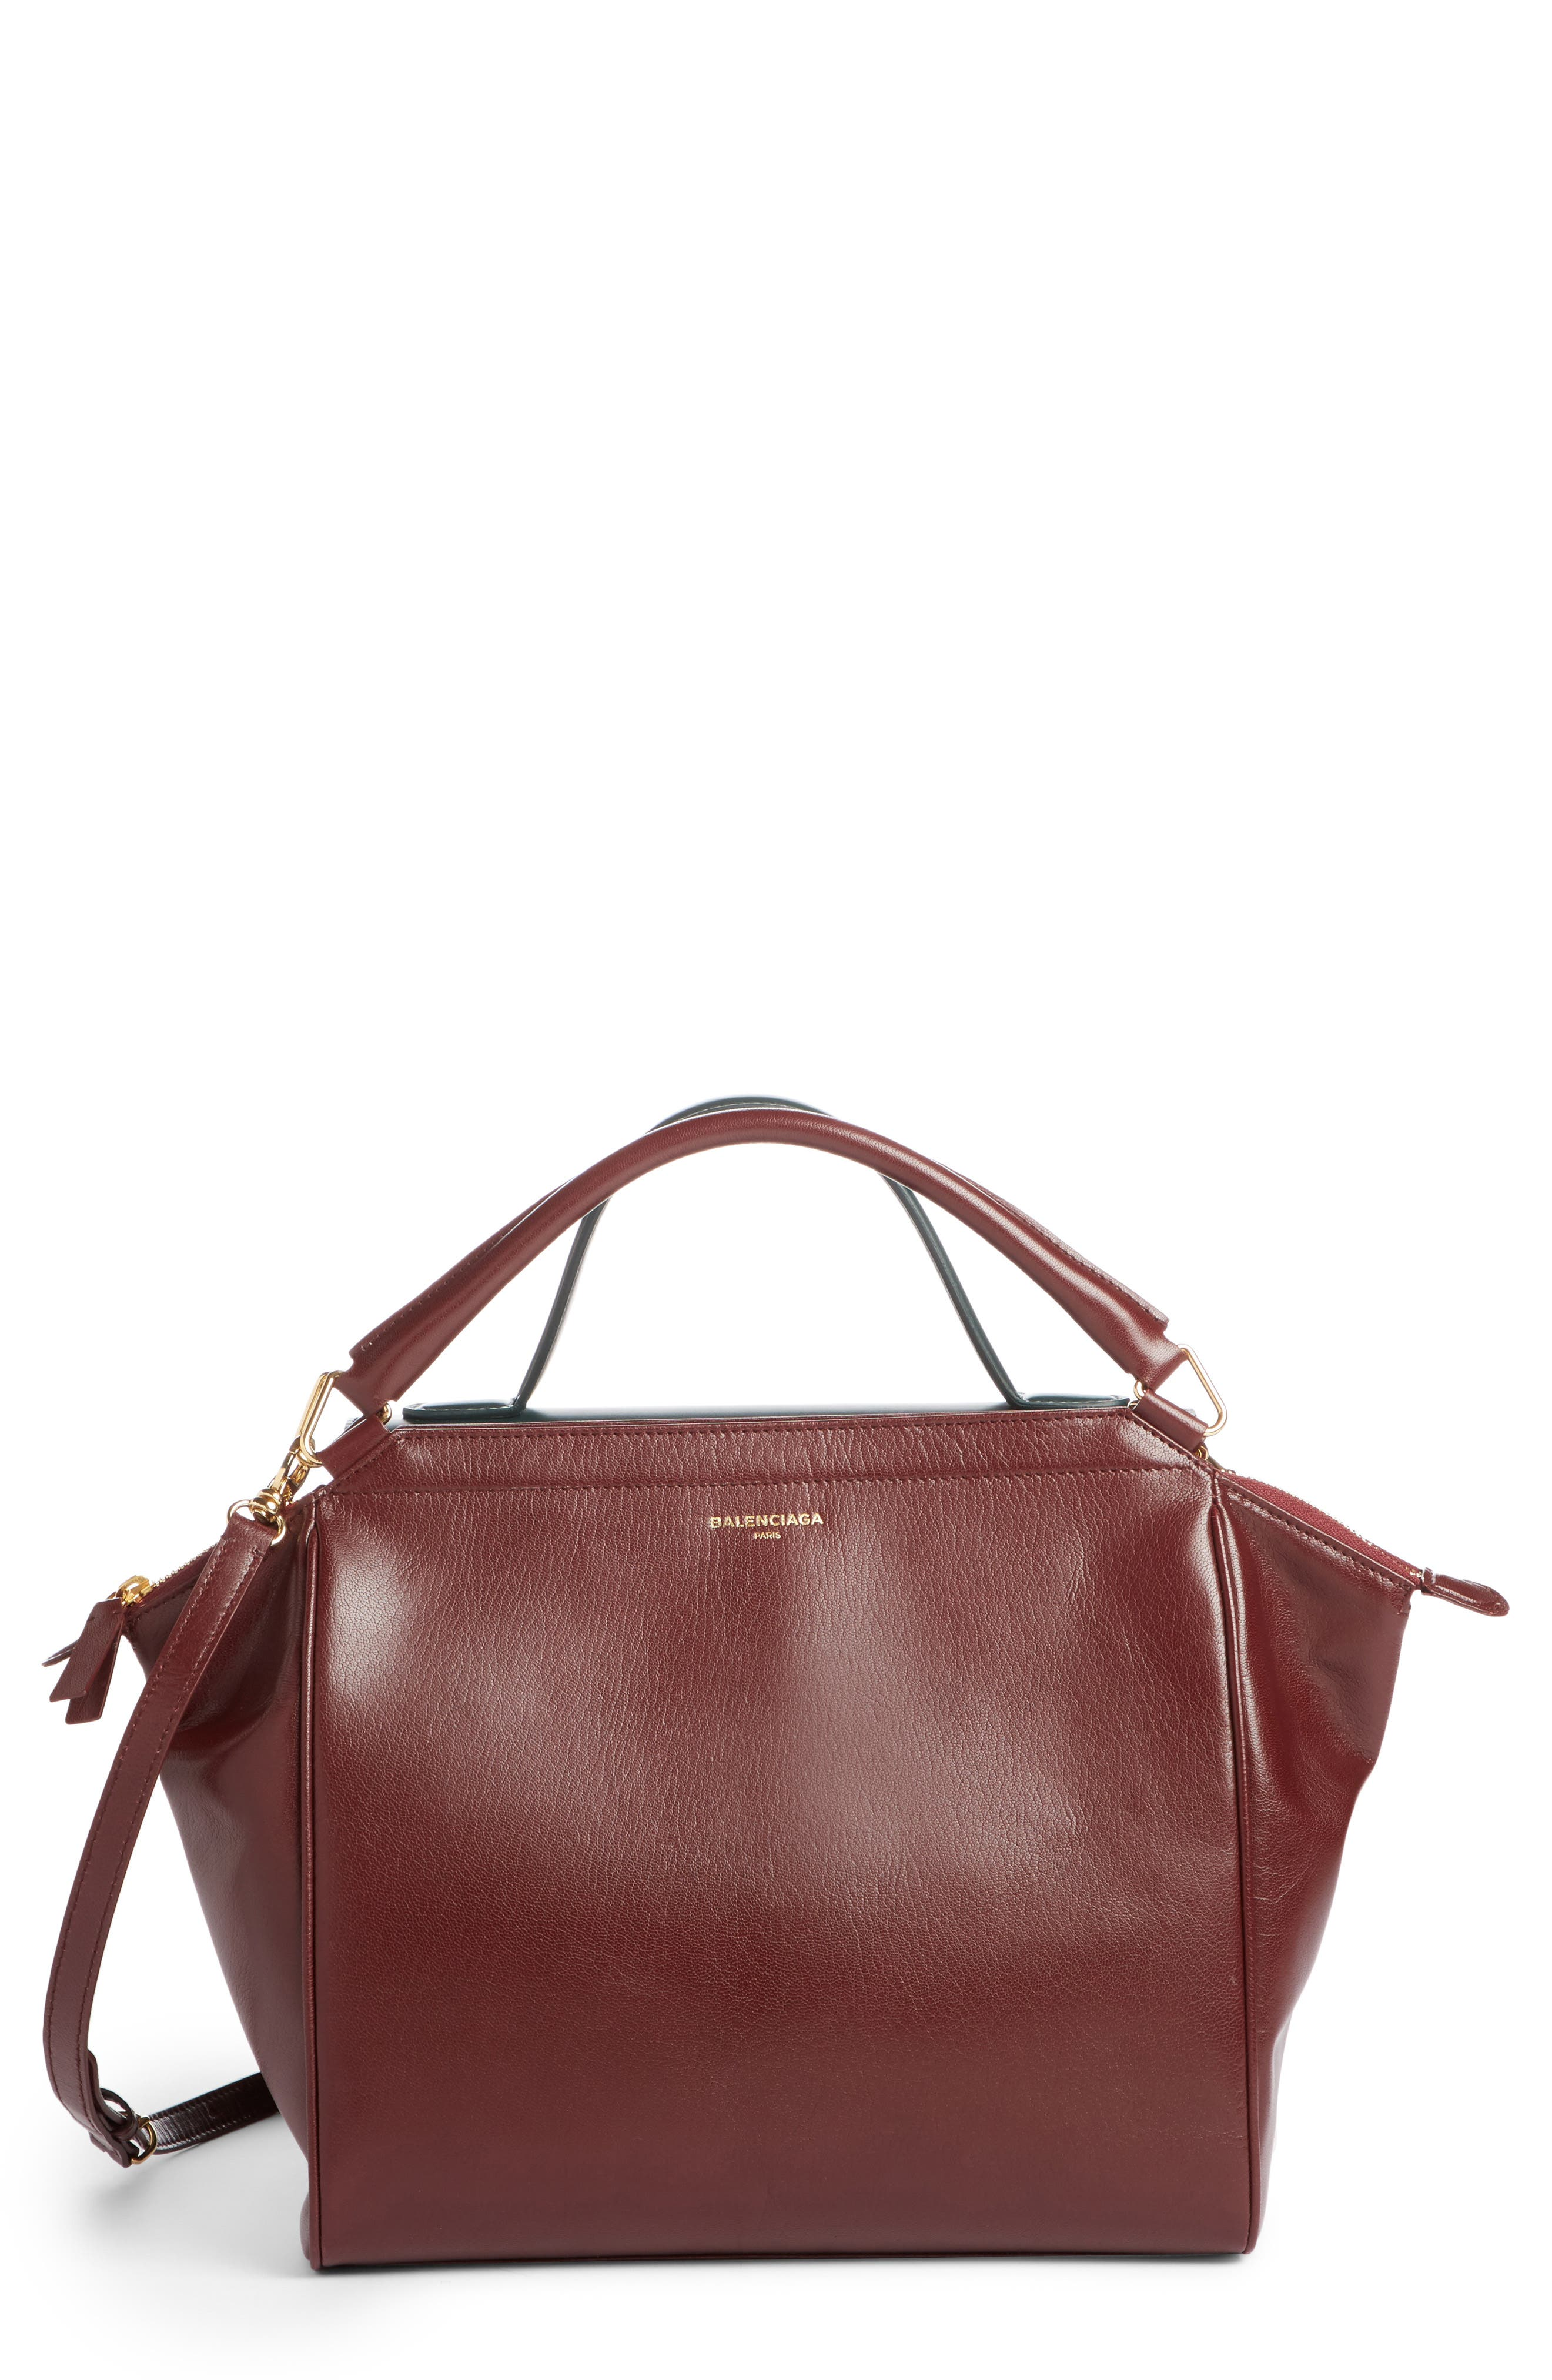 Collage Double Calfskin Leather Bag,                         Main,                         color, 641